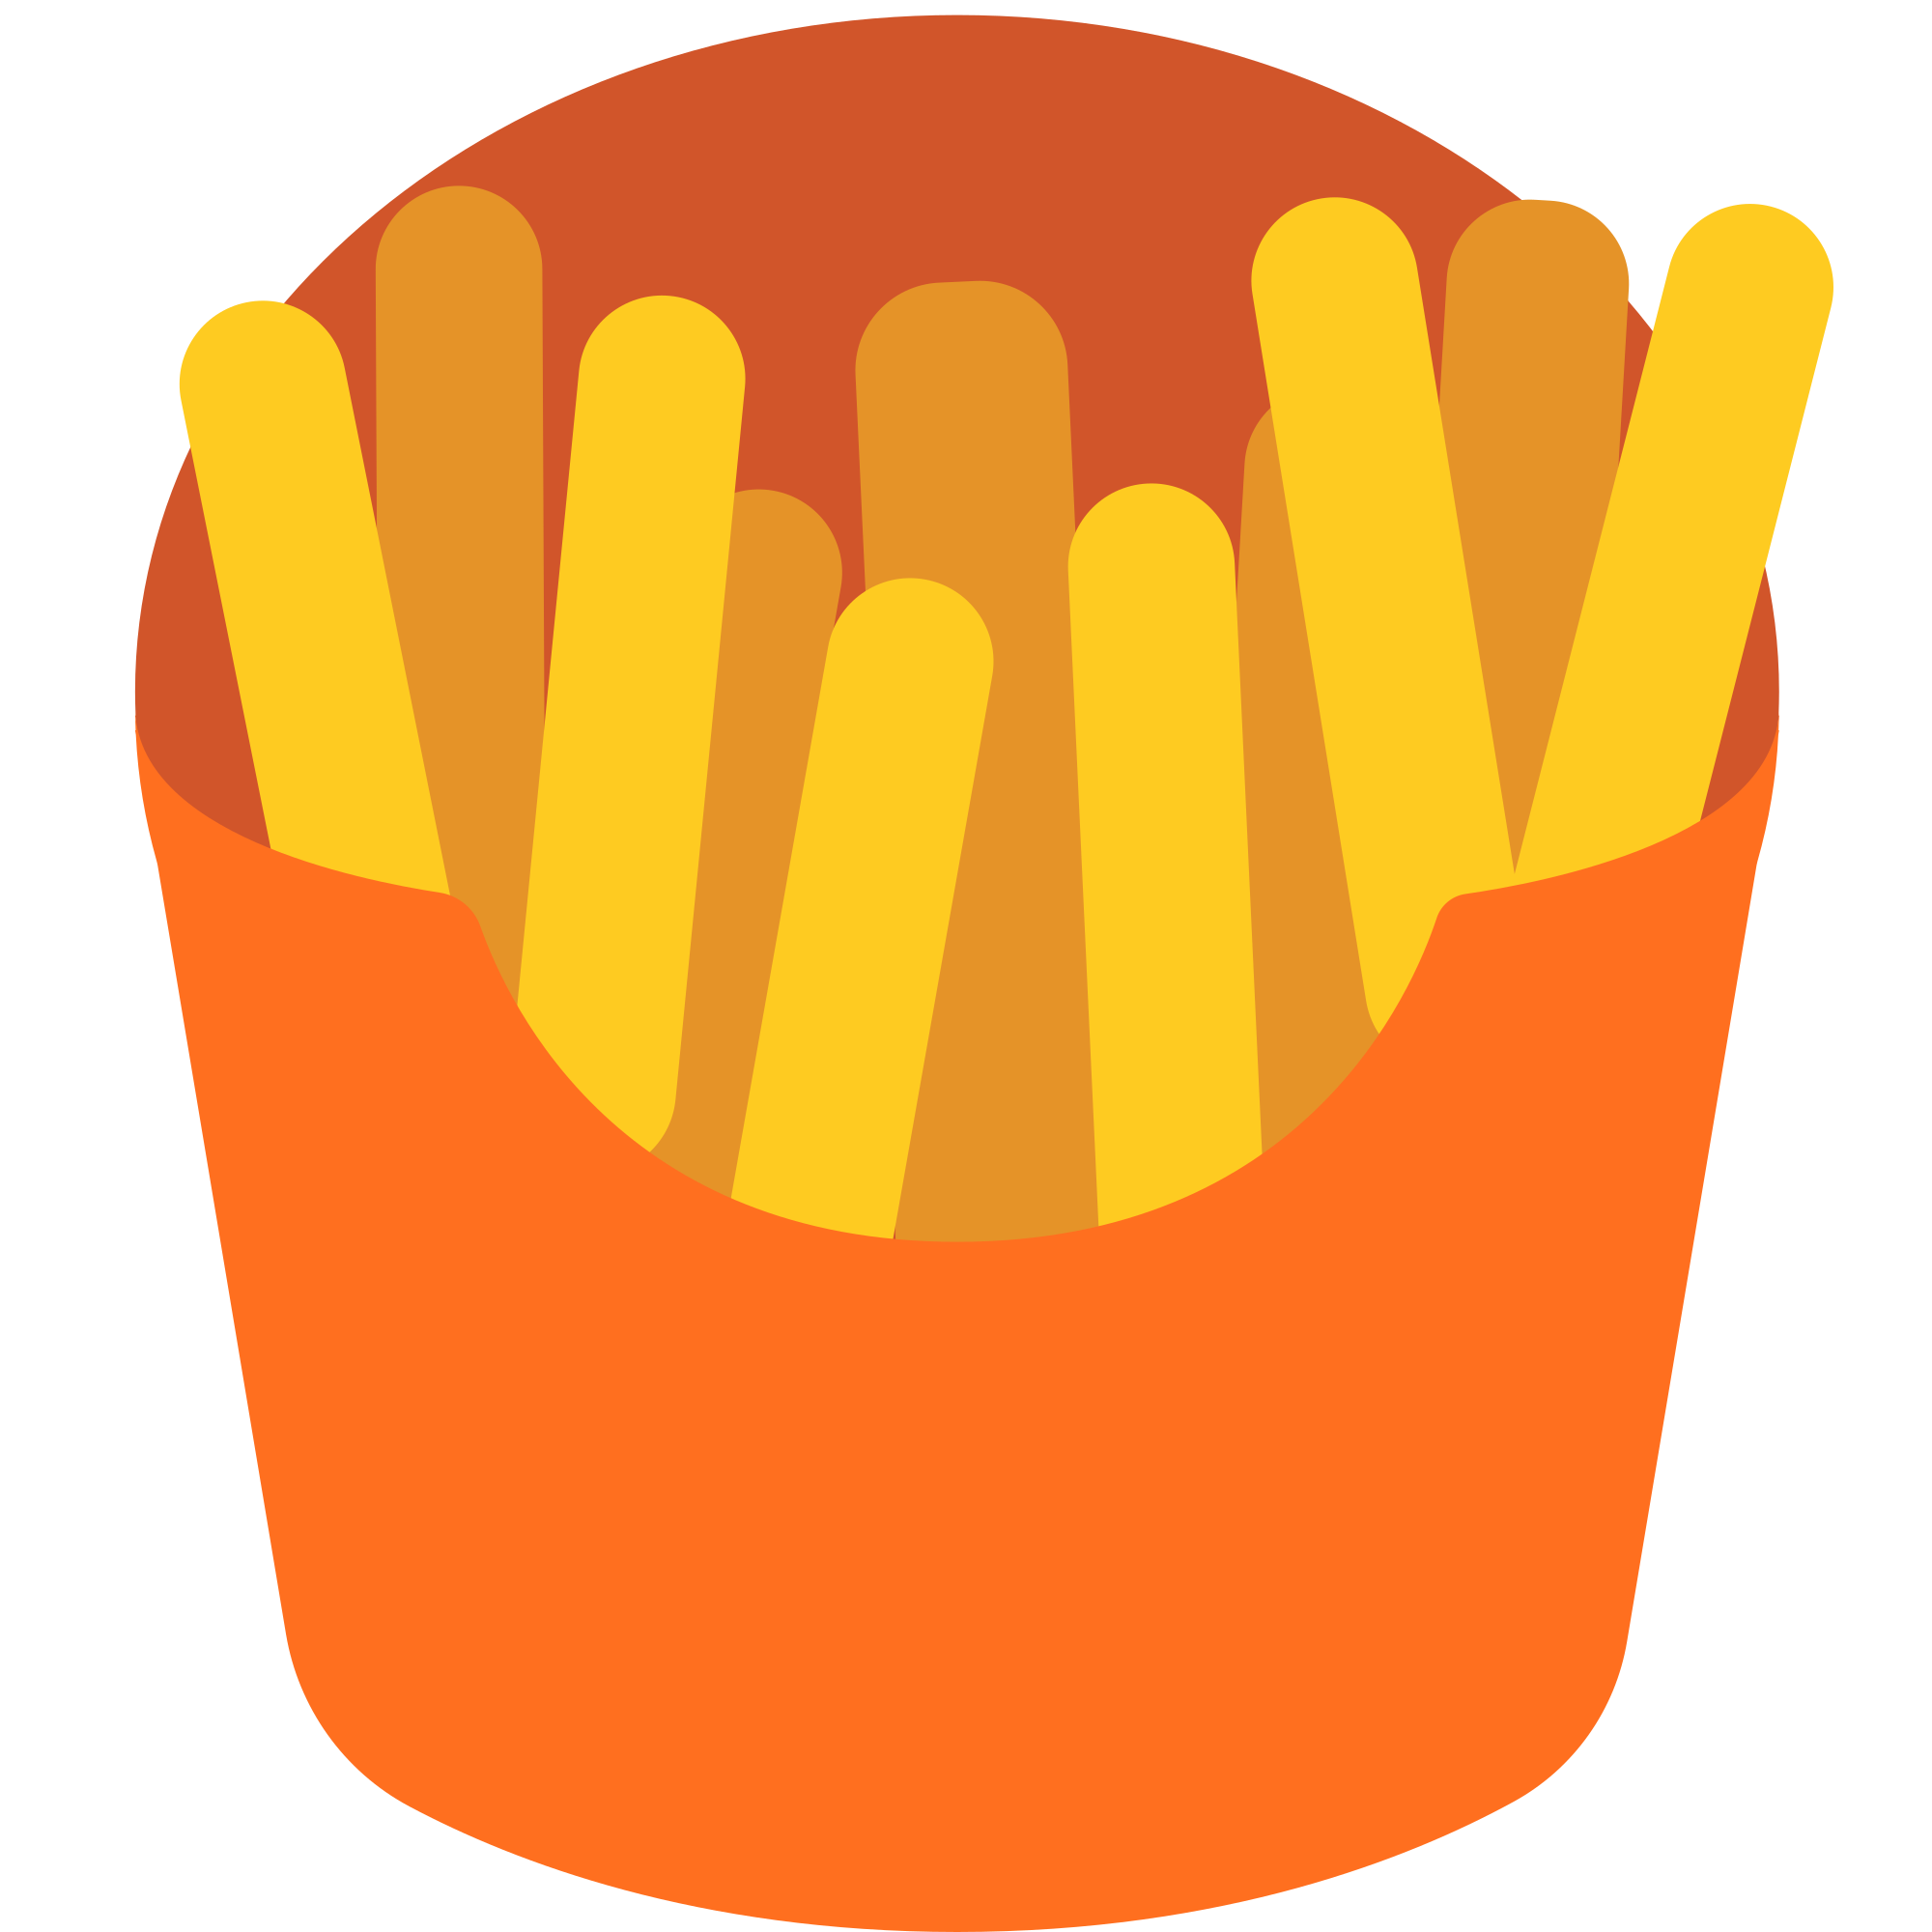 French fry shop of. Fries clipart unhealthy food